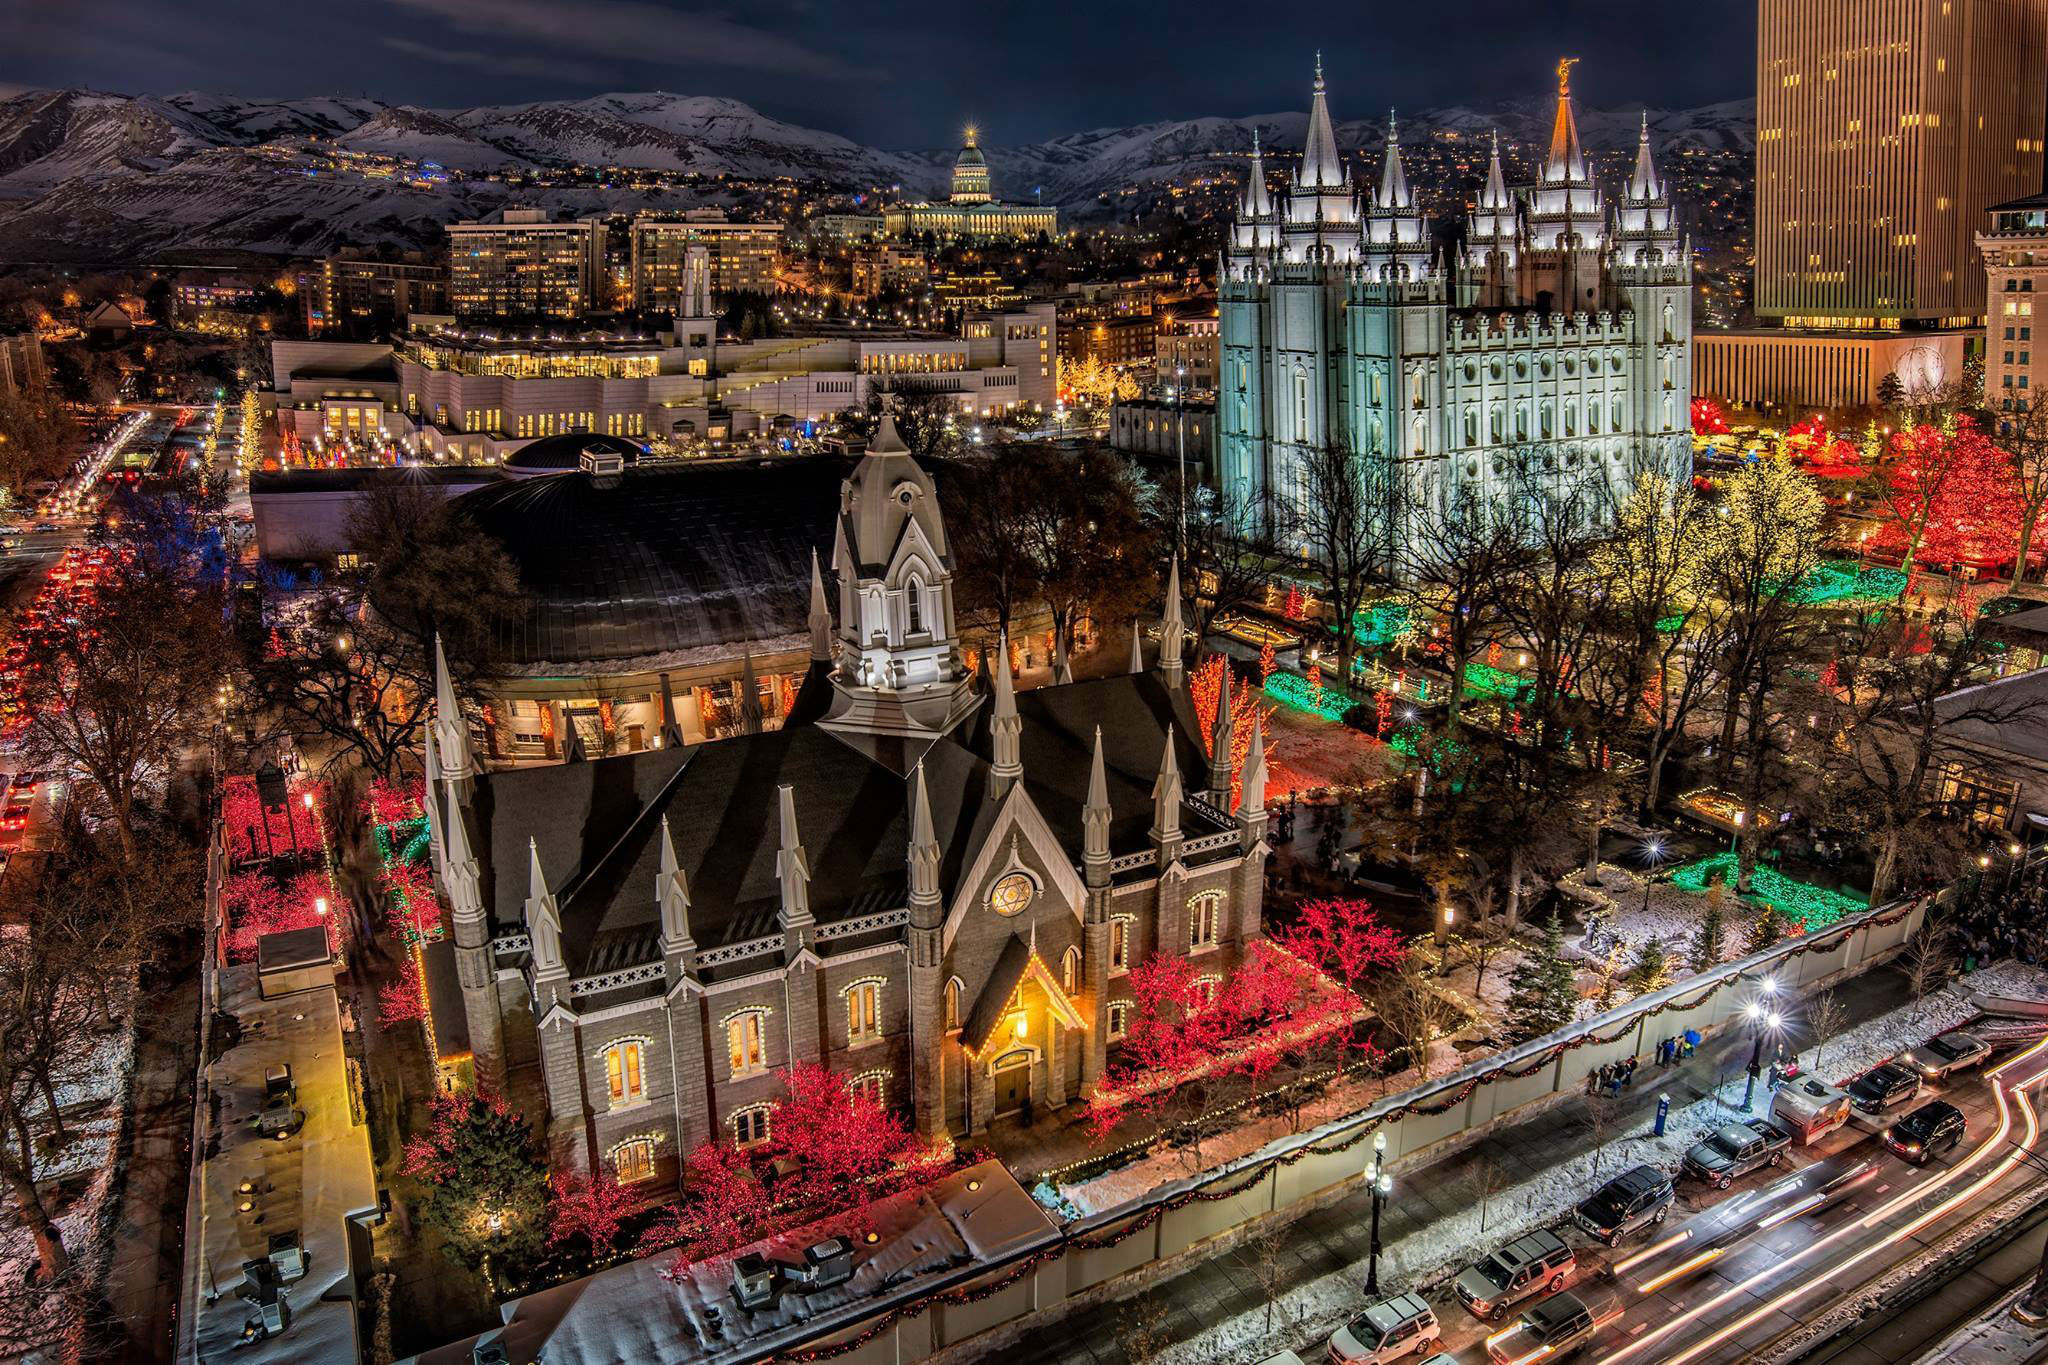 An image of Temple Square at Christmas. In the foreground is the chapel on temple square, and in the background is the temple. All around in the trees and bushes are bright Christmas lights. Other Salt Lake City building are visible in the background behind the temple.